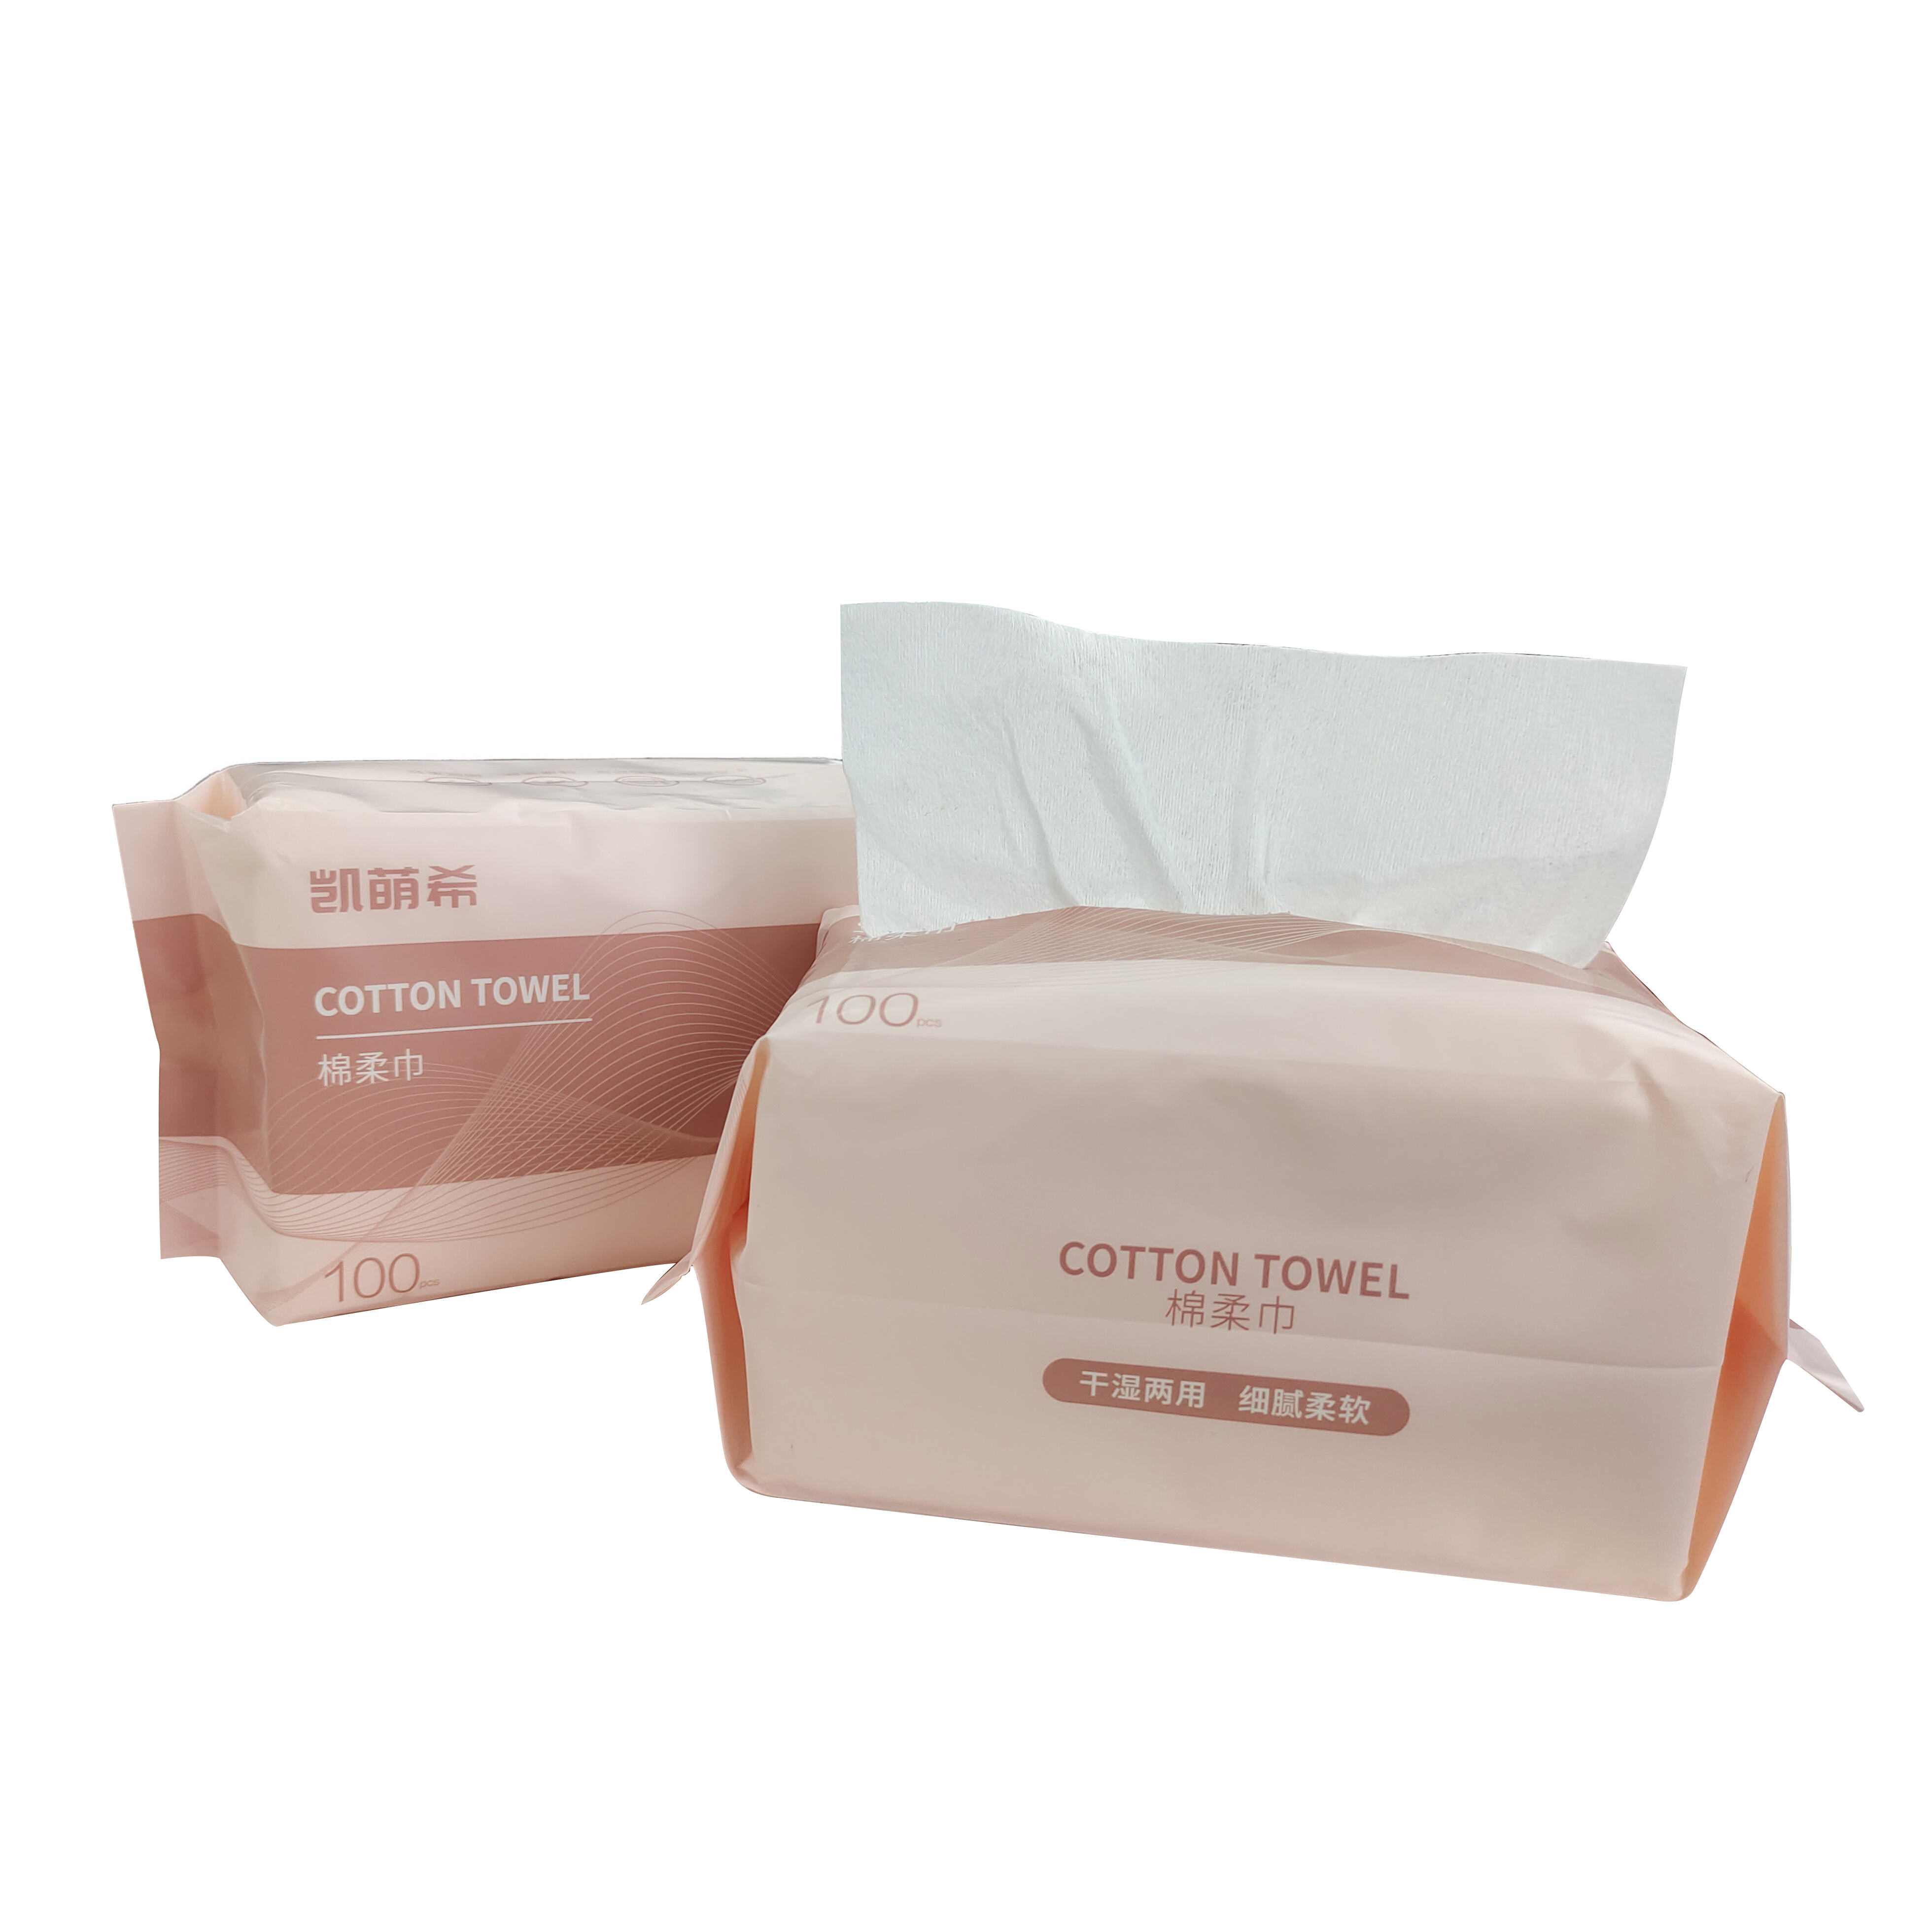 UKOOS free sample 100% cotton dry wipes ISO9001 certificate baby skin cleaning disposable towel